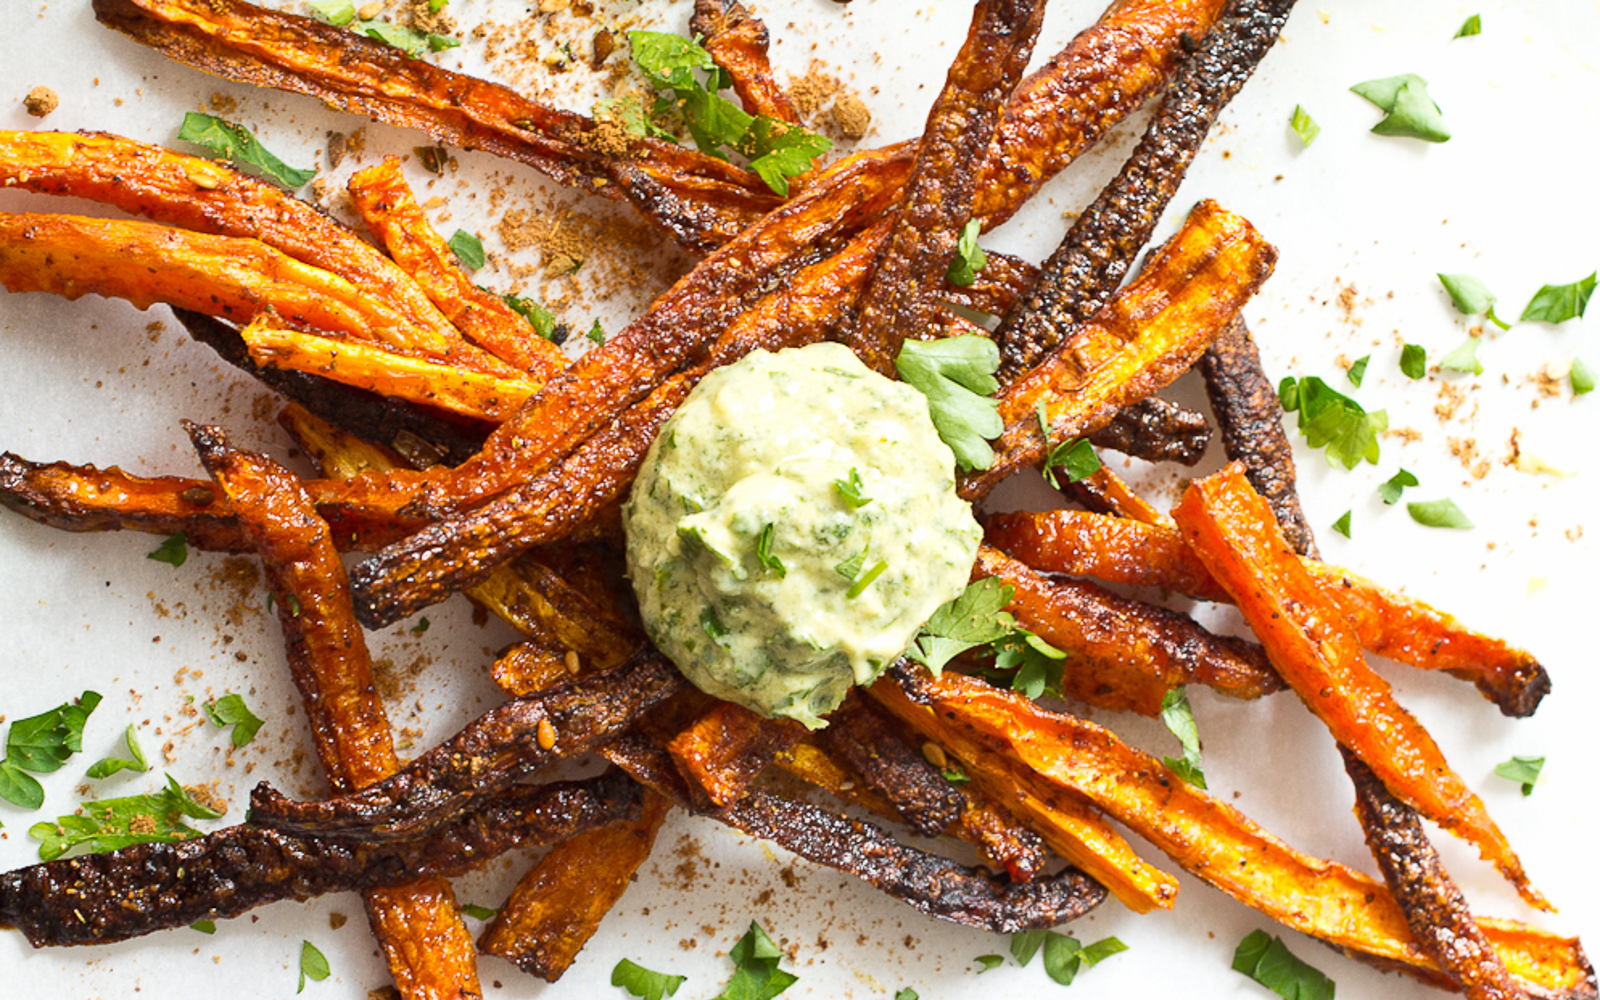 Baked Shoestring Carrot Fries